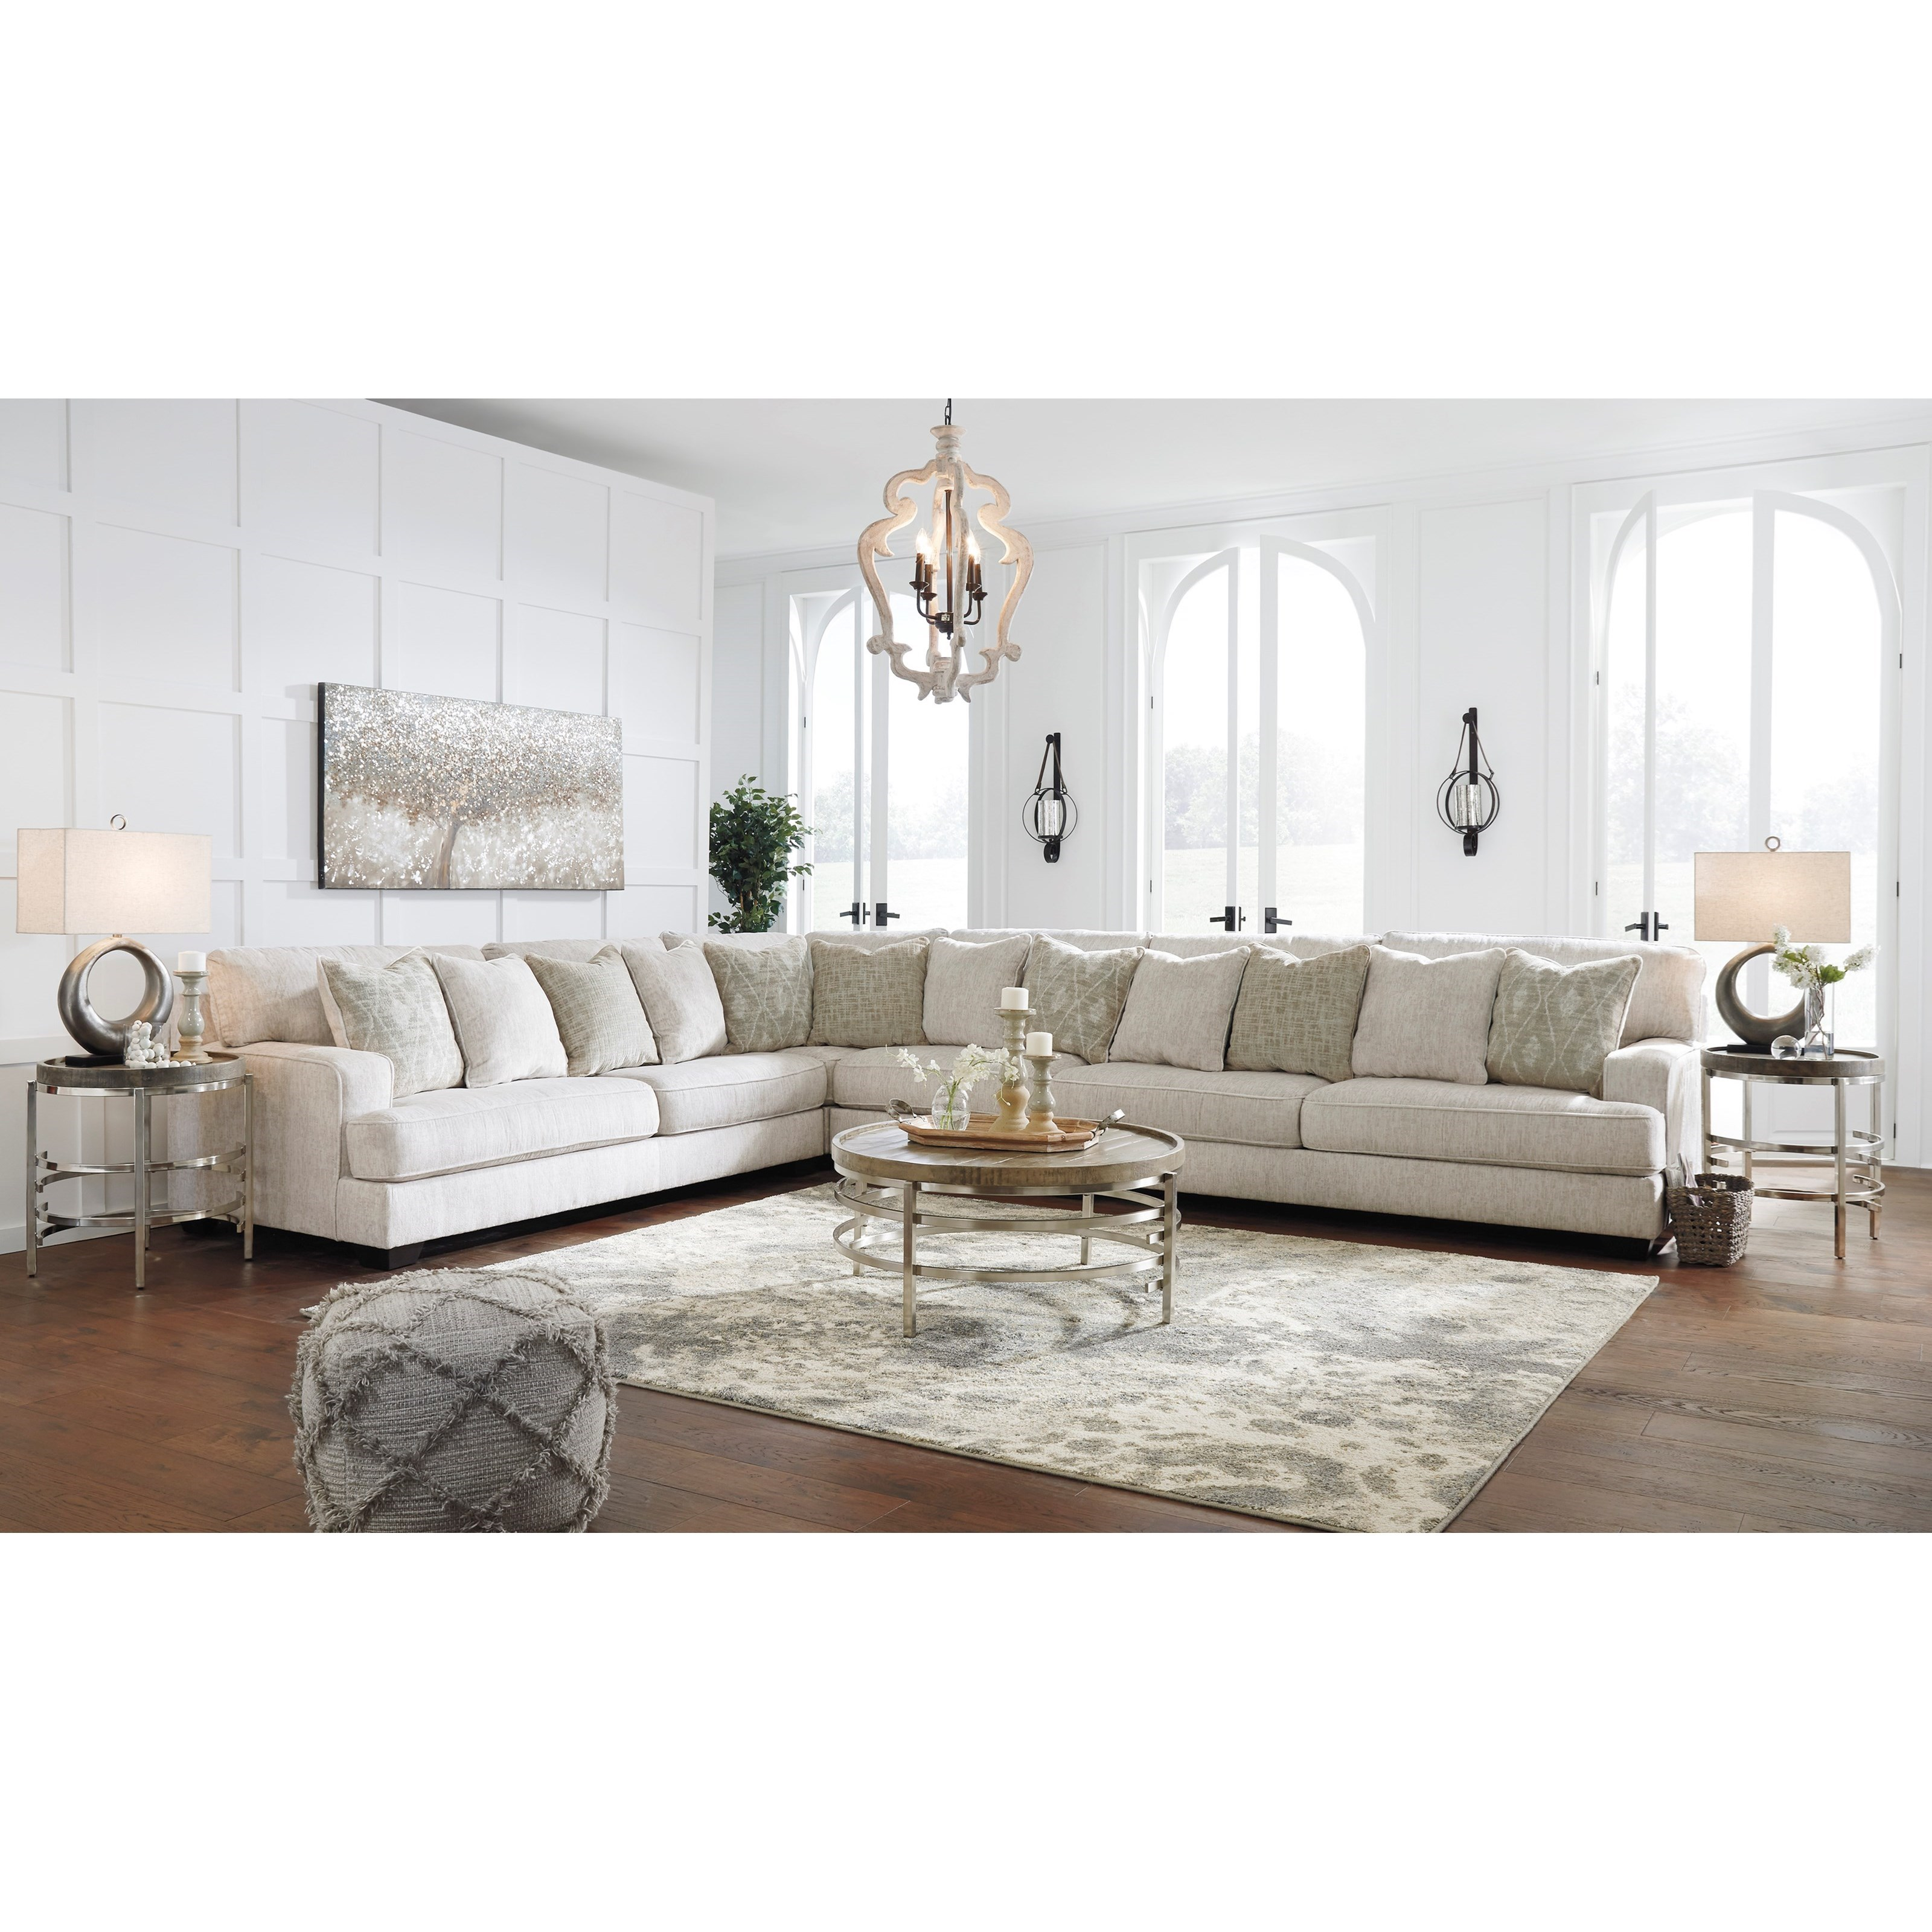 Signature Design By Ashley Rawcliffe 4-Piece Sectional